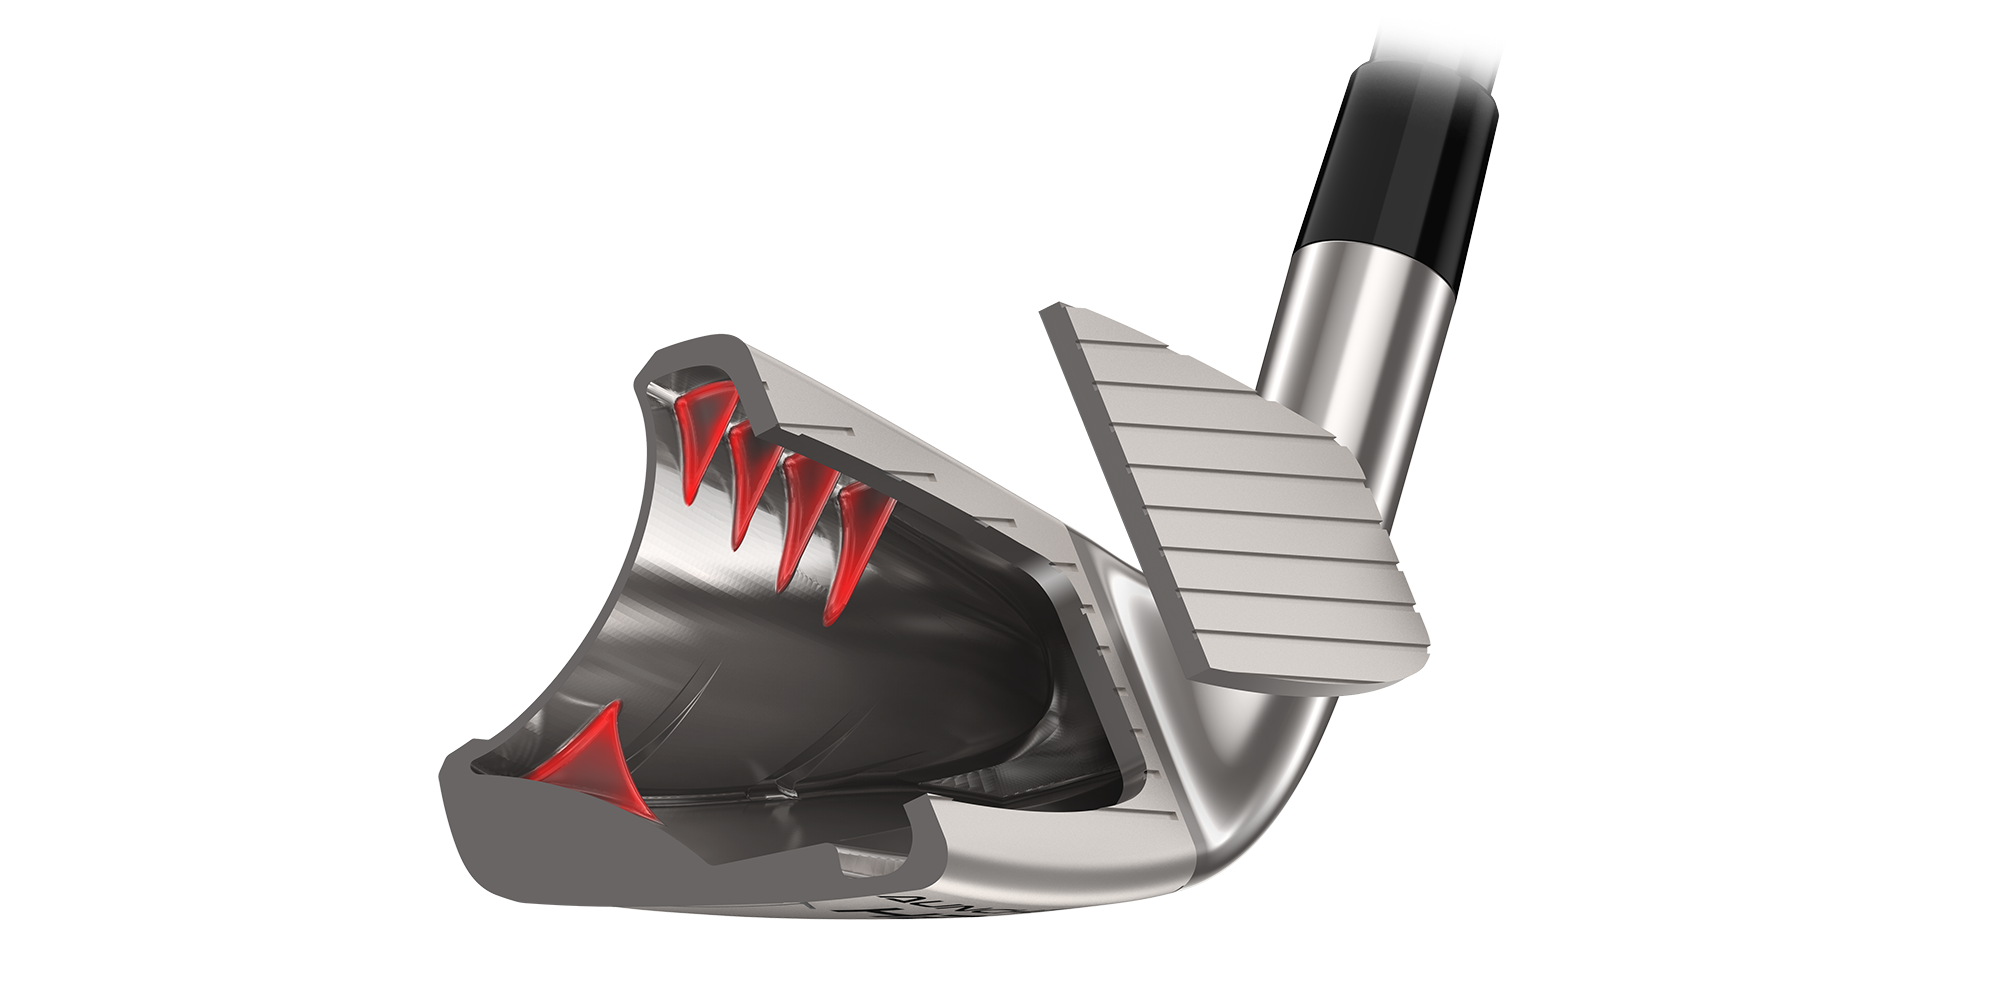 Cleveland HB Turbo Irons Face Technology